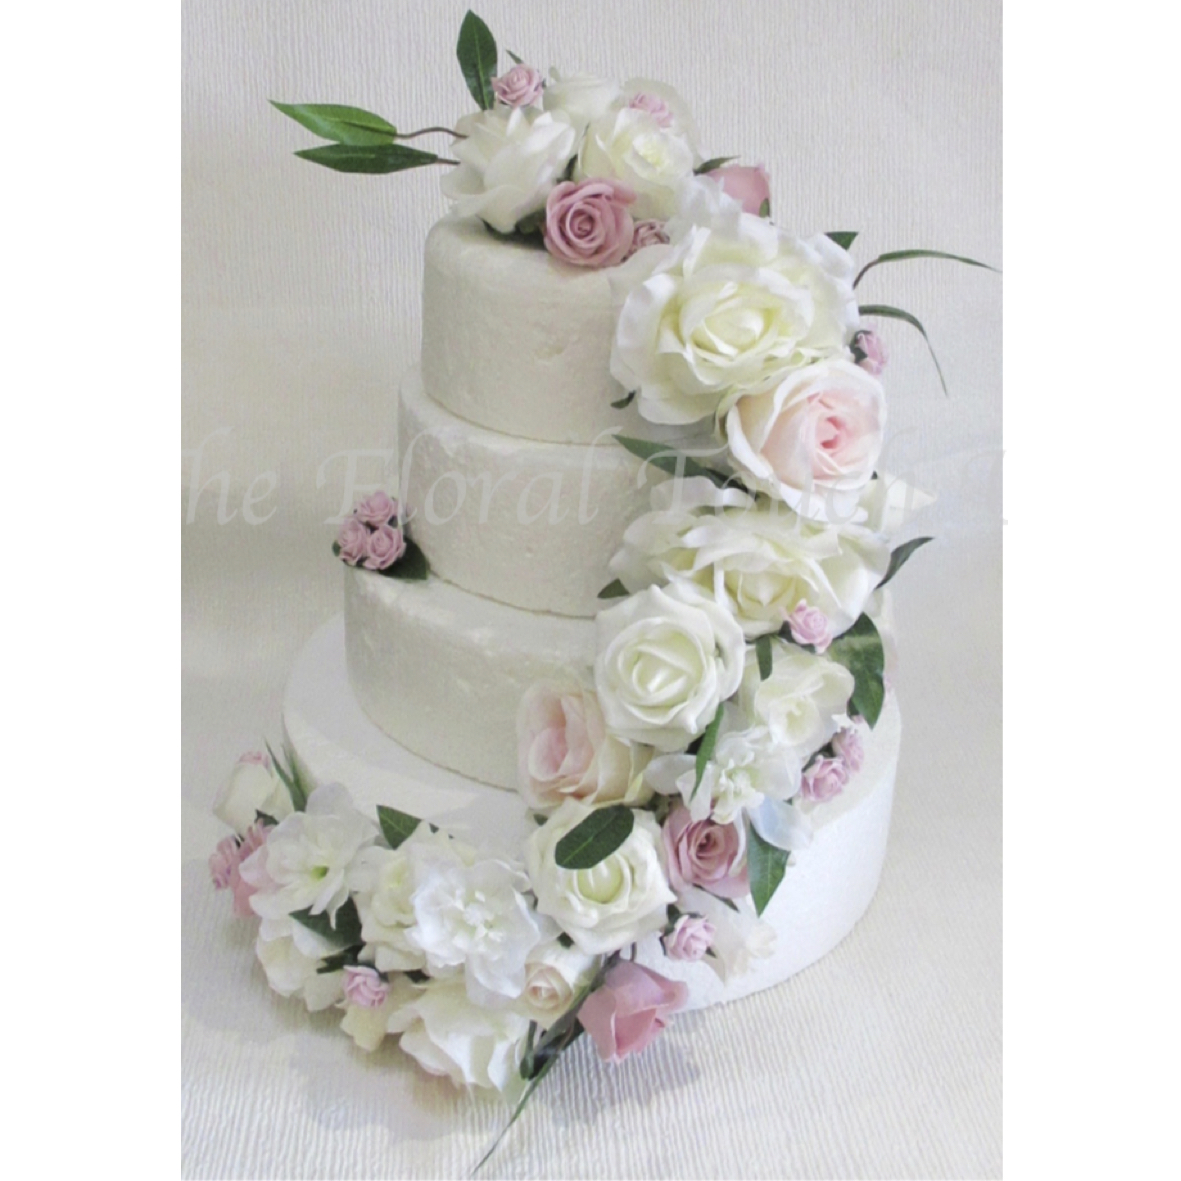 Stunning Pink & Ivory Avalanche Cake Cascade